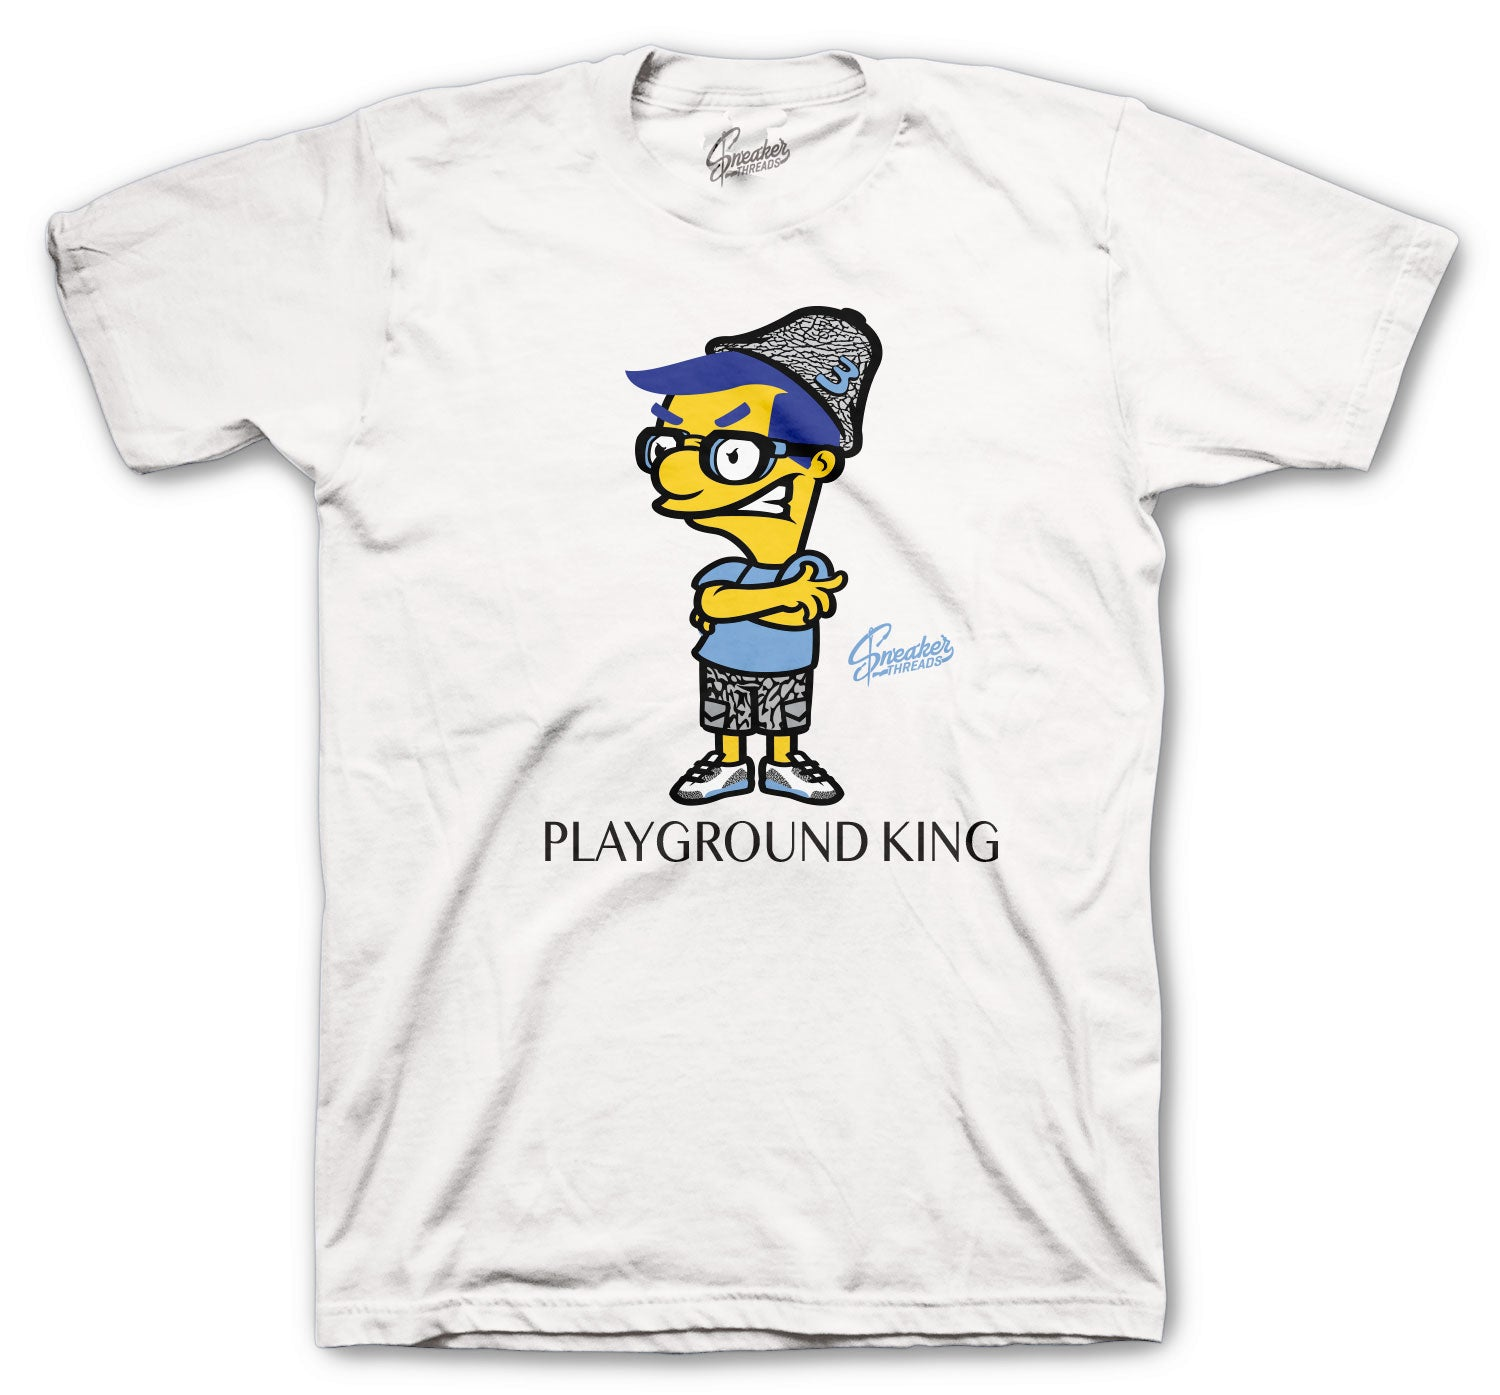 Jordan 3 UNC Shirt - Playground King - White